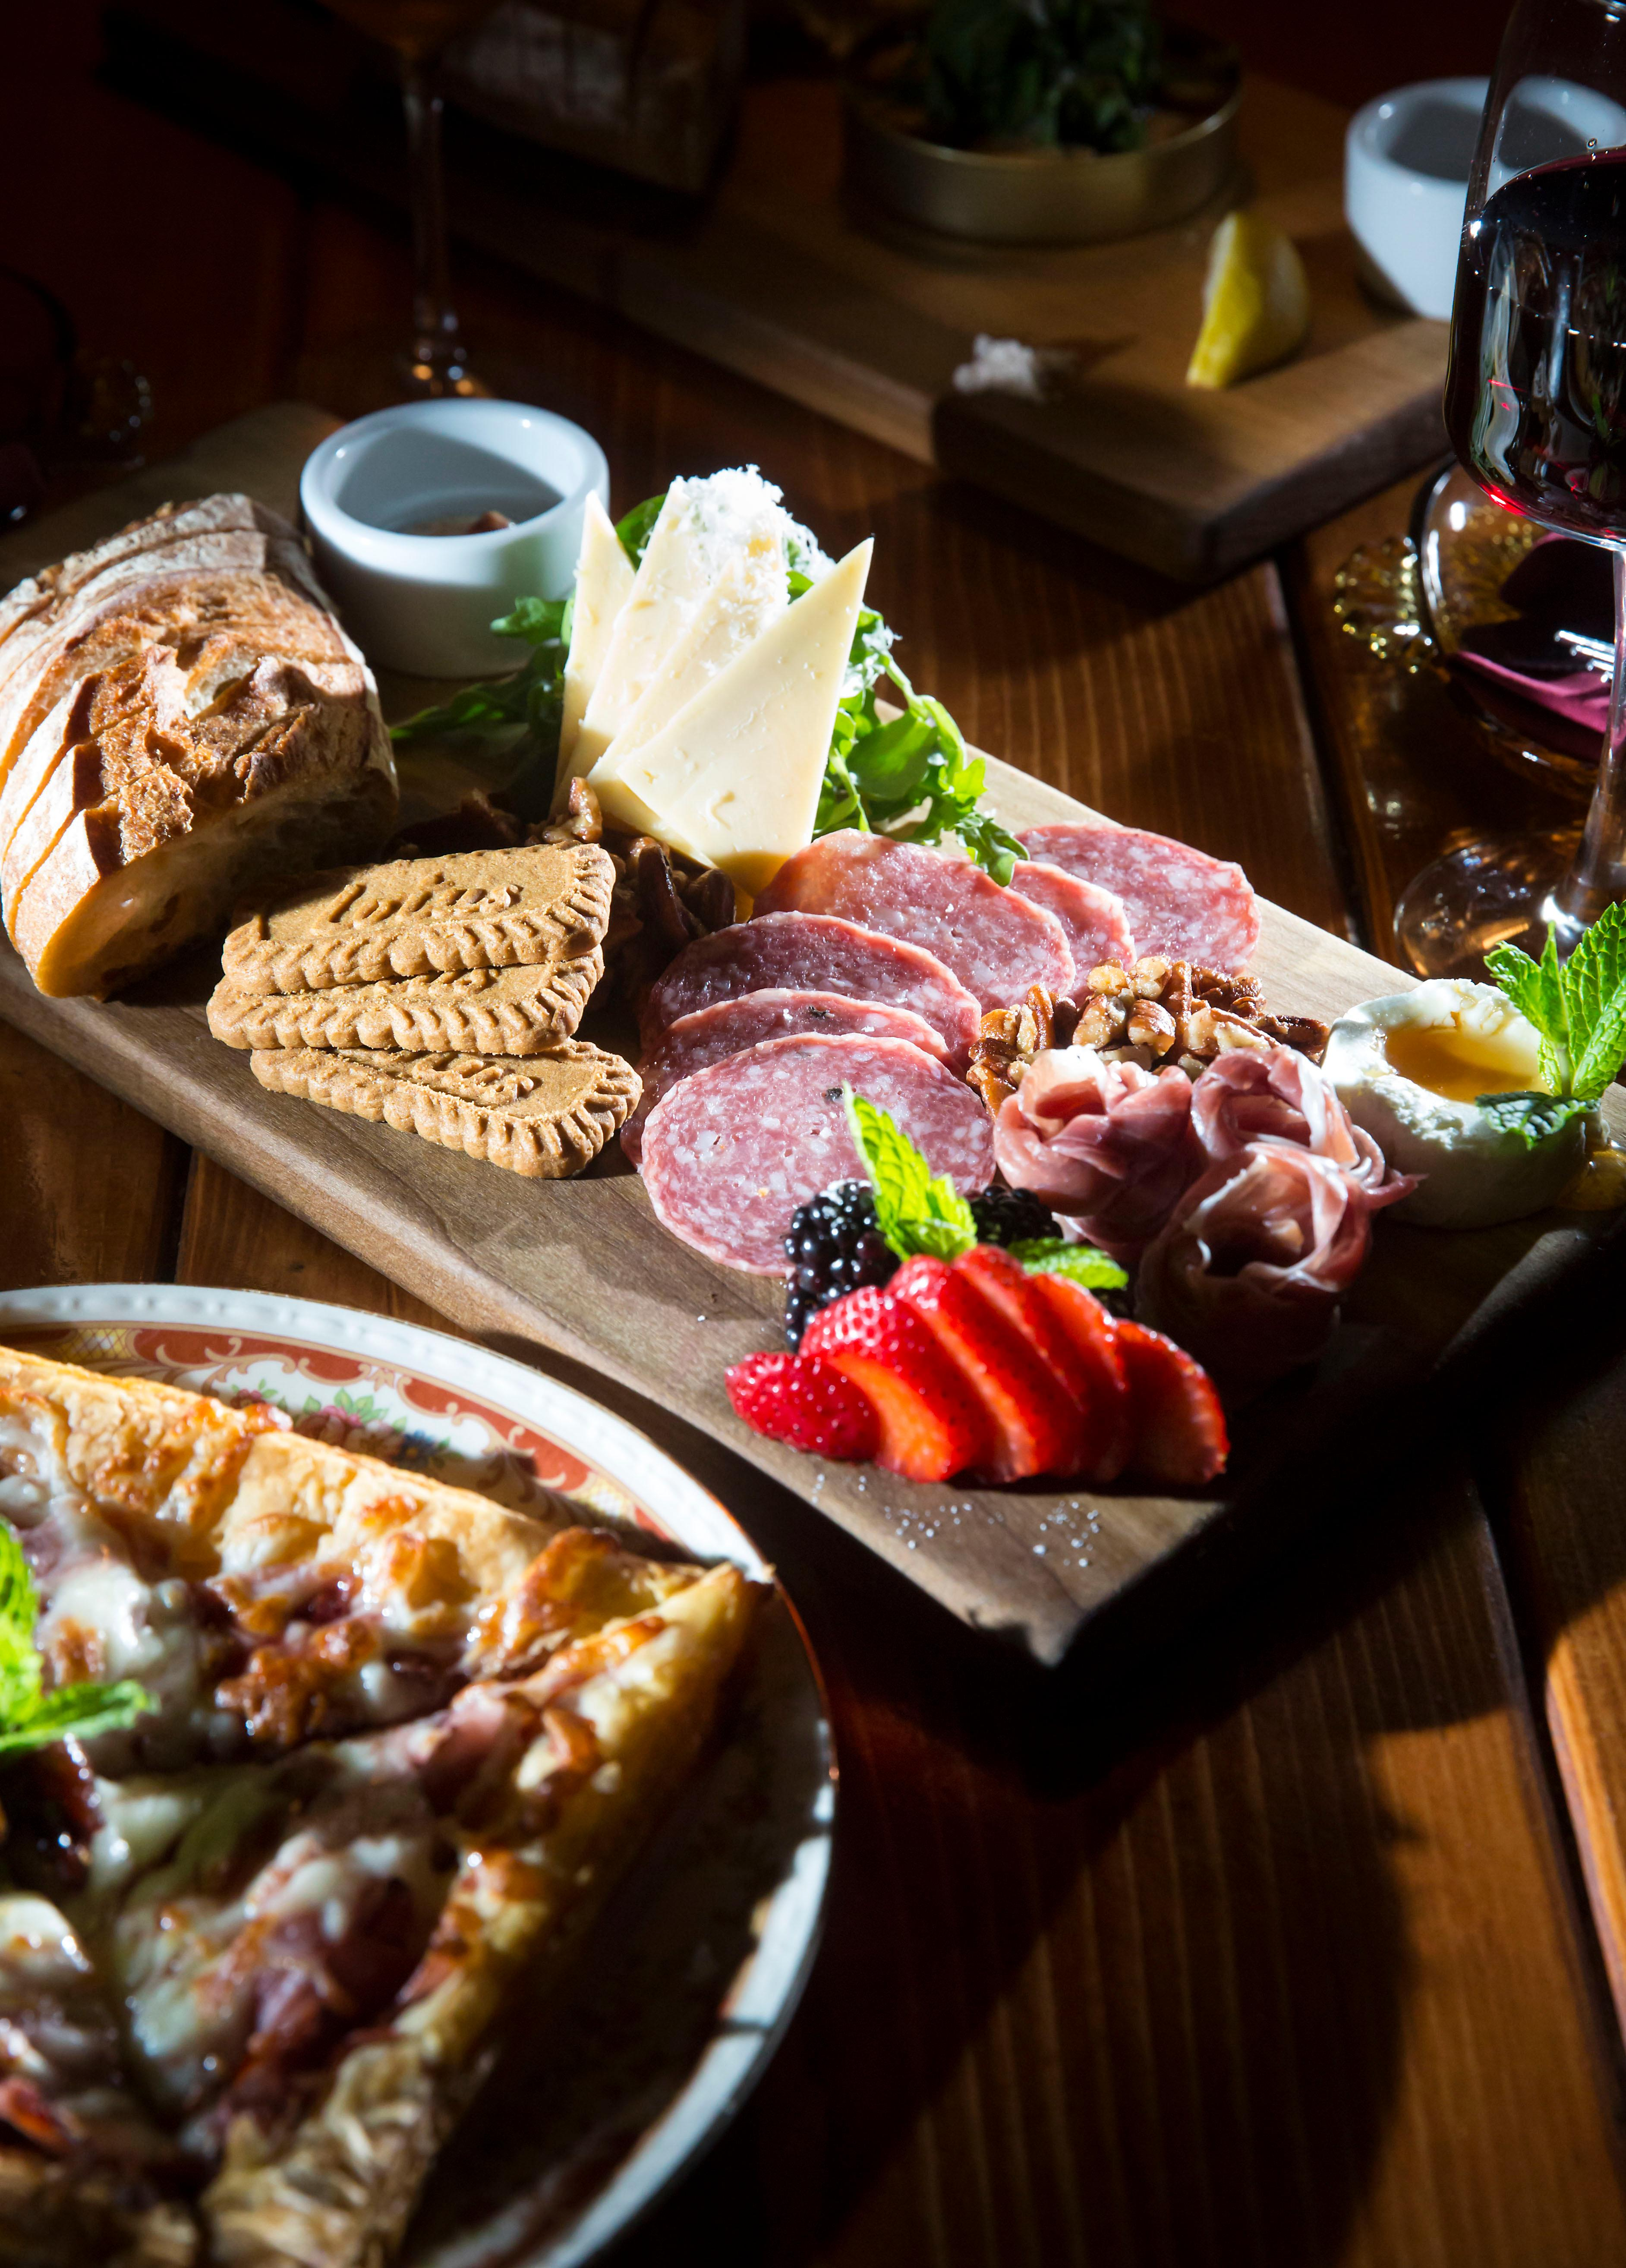 <p>&quot;The Picnic&quot;, filled with sweet and savory meats, cheeses, fruits and treats.</p><p>The Little Tin in Ballard opened in December 2016 and is becoming a quiet the little hot-spot. It's a quieter bar, in comparison to the bumping bar scene in Ballard. Neither a bar nor a restaurant, they instead call themselves a 'goods &amp;amp; apothecary cabinet'! The Little Tin is a place for people to gather around and enjoy delicious snacks and thoughtful, well-made cocktails. Can't be mad at that! (Image: Sy Bean / Seattle Refined)</p>